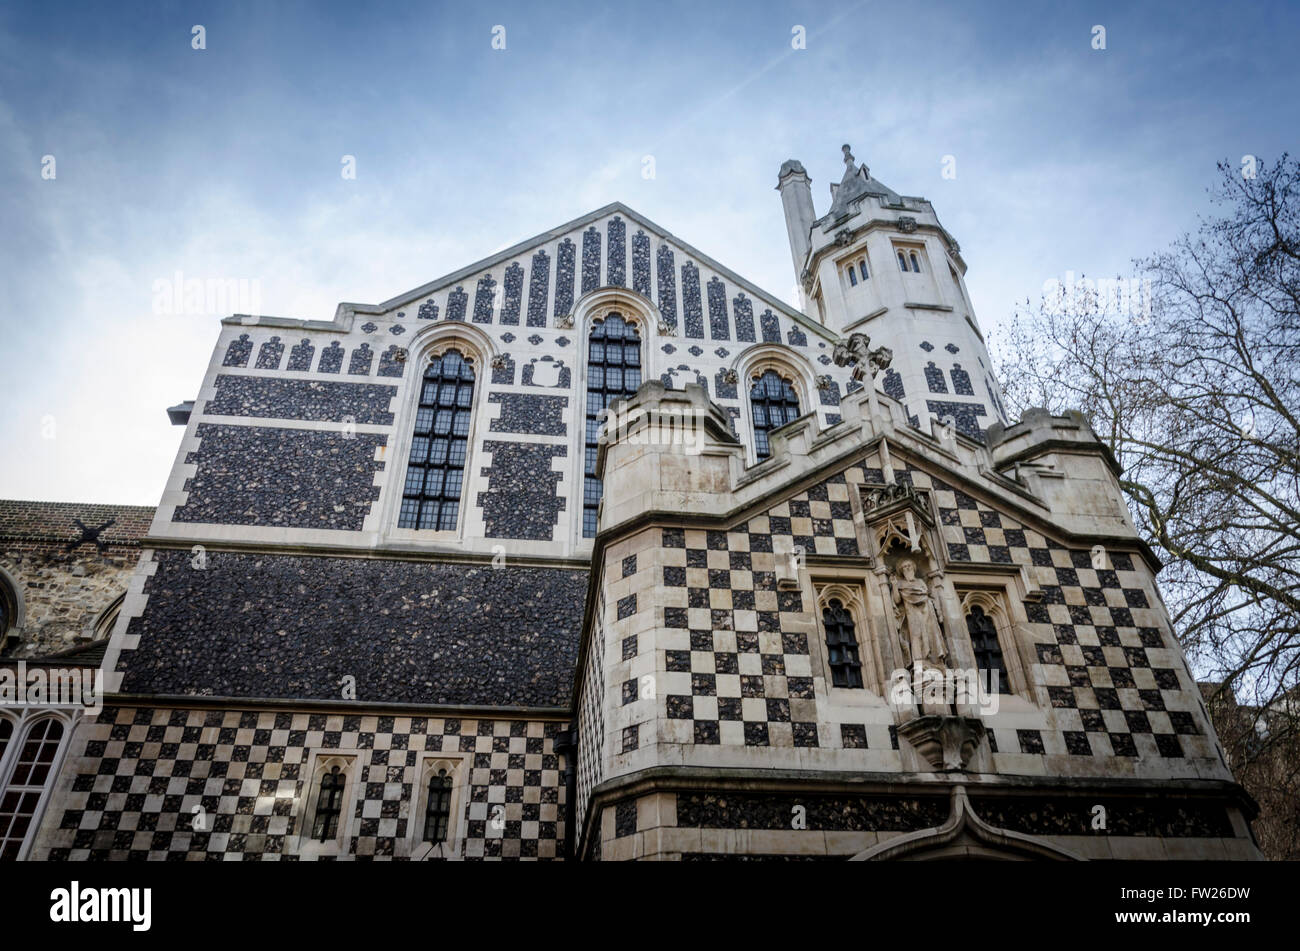 St Bartholomew the Great viewed from Cloth Fair, West Smithfield, London, UKStock Photo